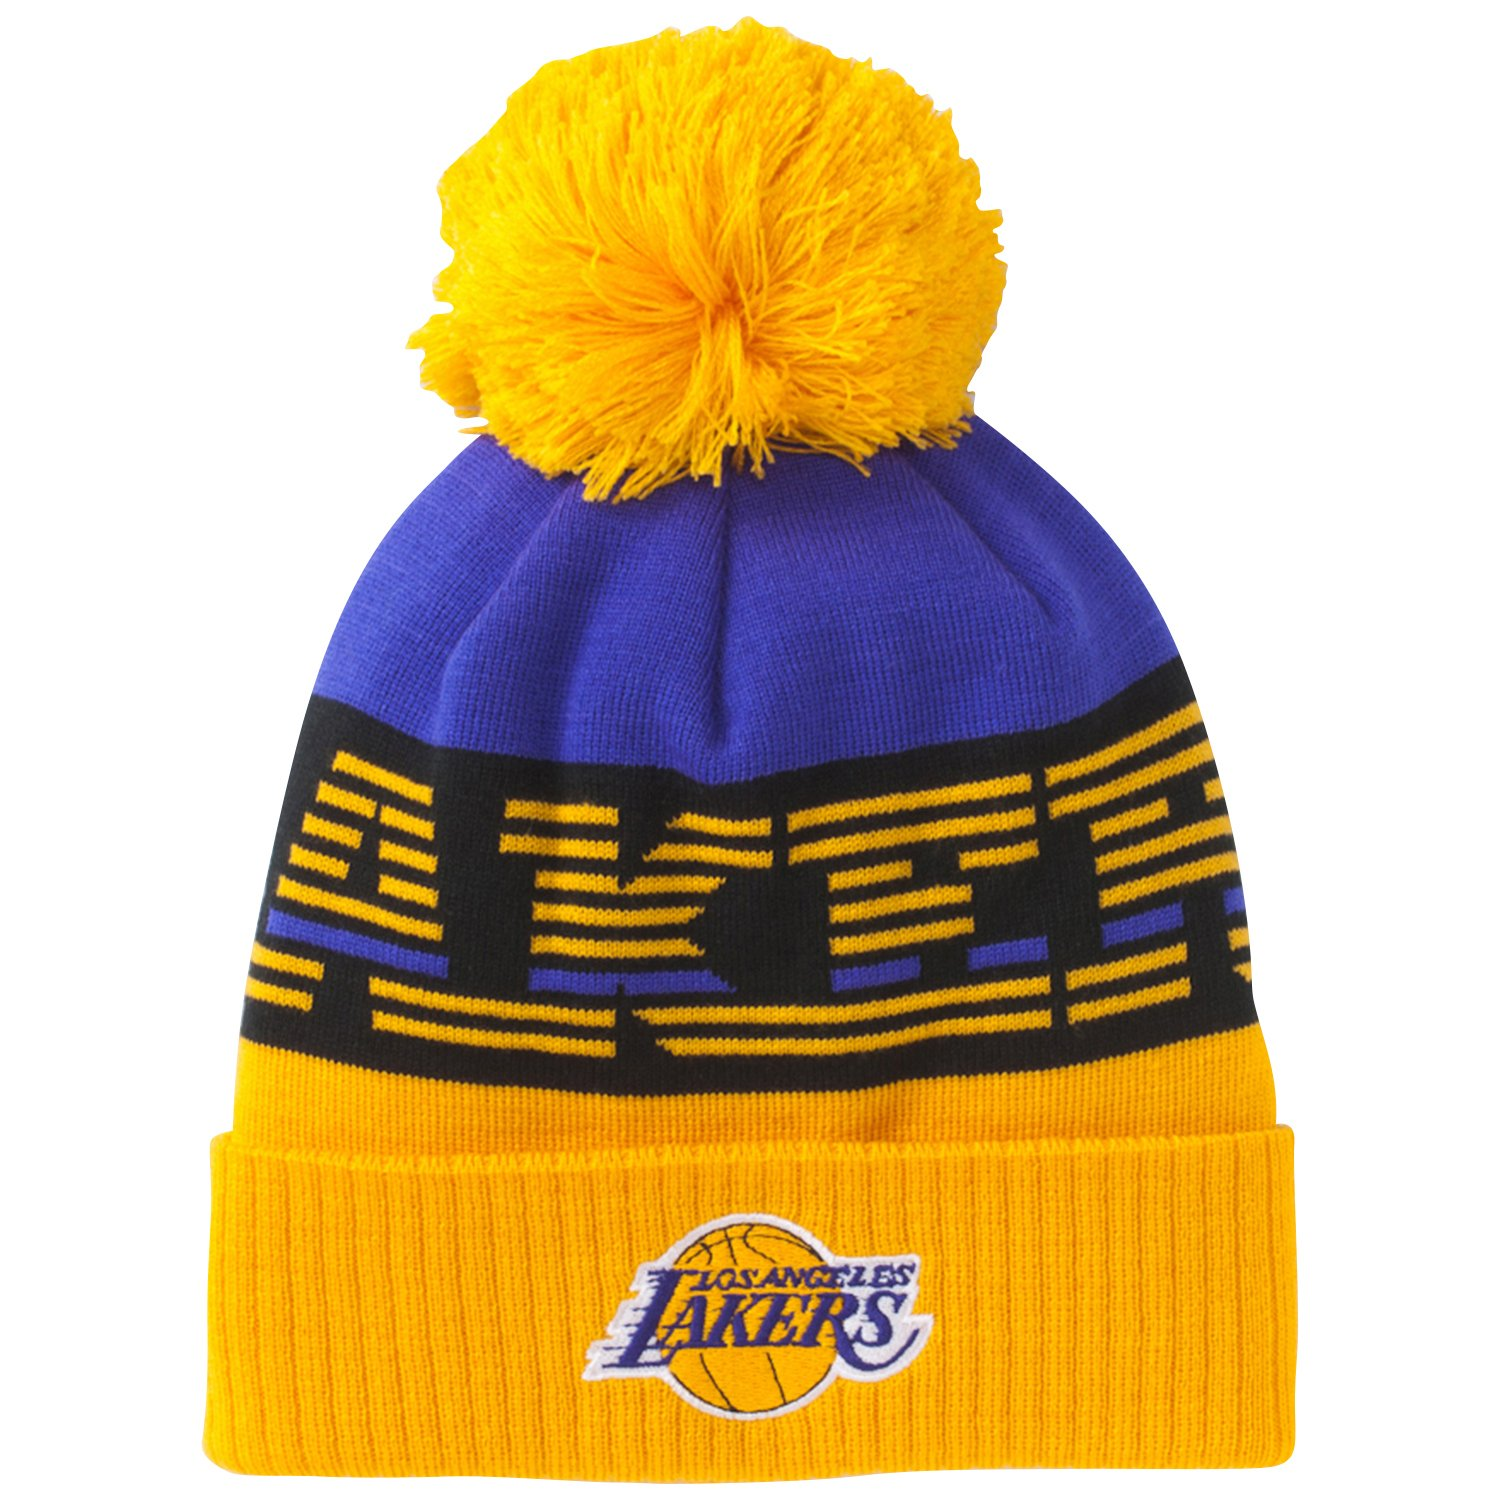 ecfc9583d27 ... clearance adidas la lakers beanie large amazon sports outdoors 15d73  3743c